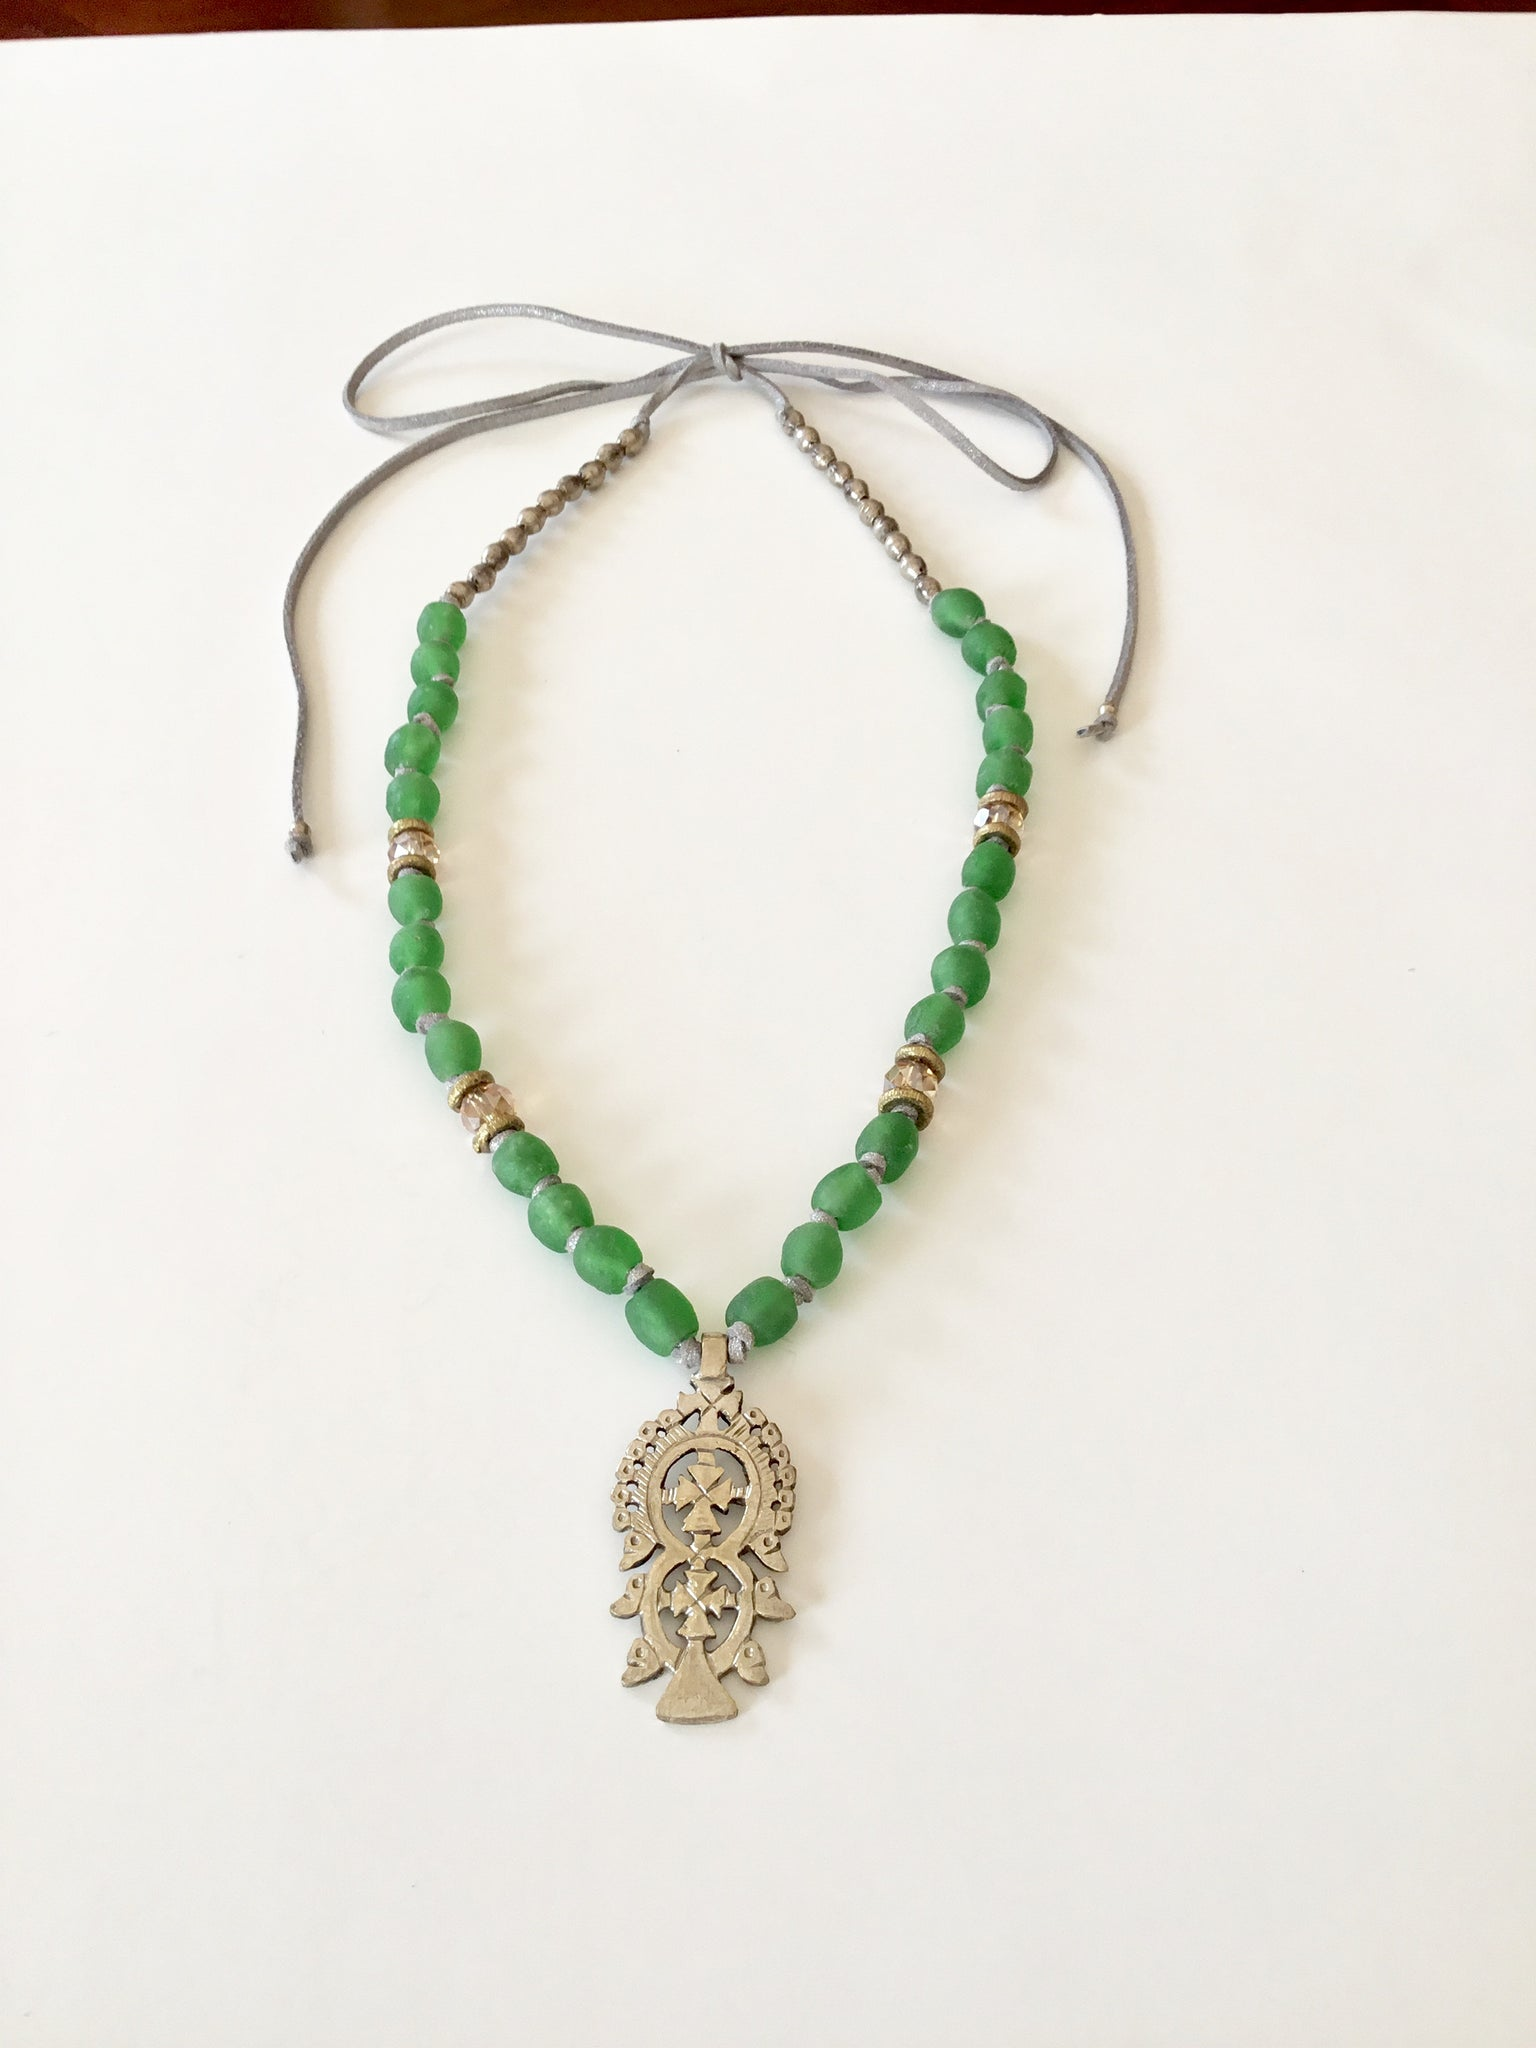 Ethopian Necklace N-0284, designed by Leyu Ambare Handmade Jewelry.